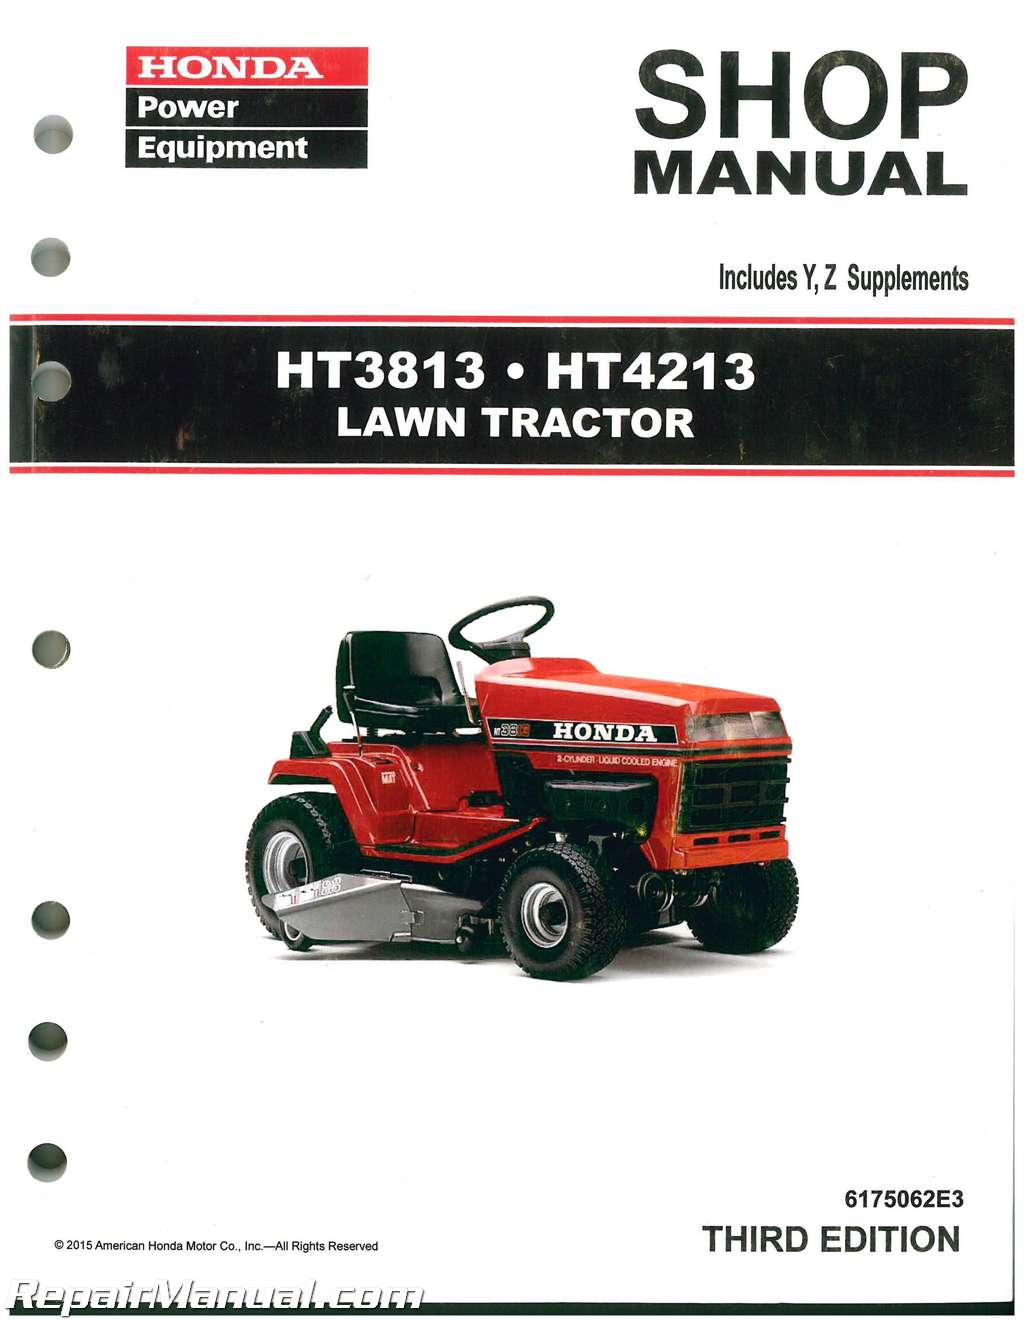 Honda Mower Manual Auto Electrical Wiring Diagram For Poulan Lawn Ht3813 Ht4213 Tractor Shop